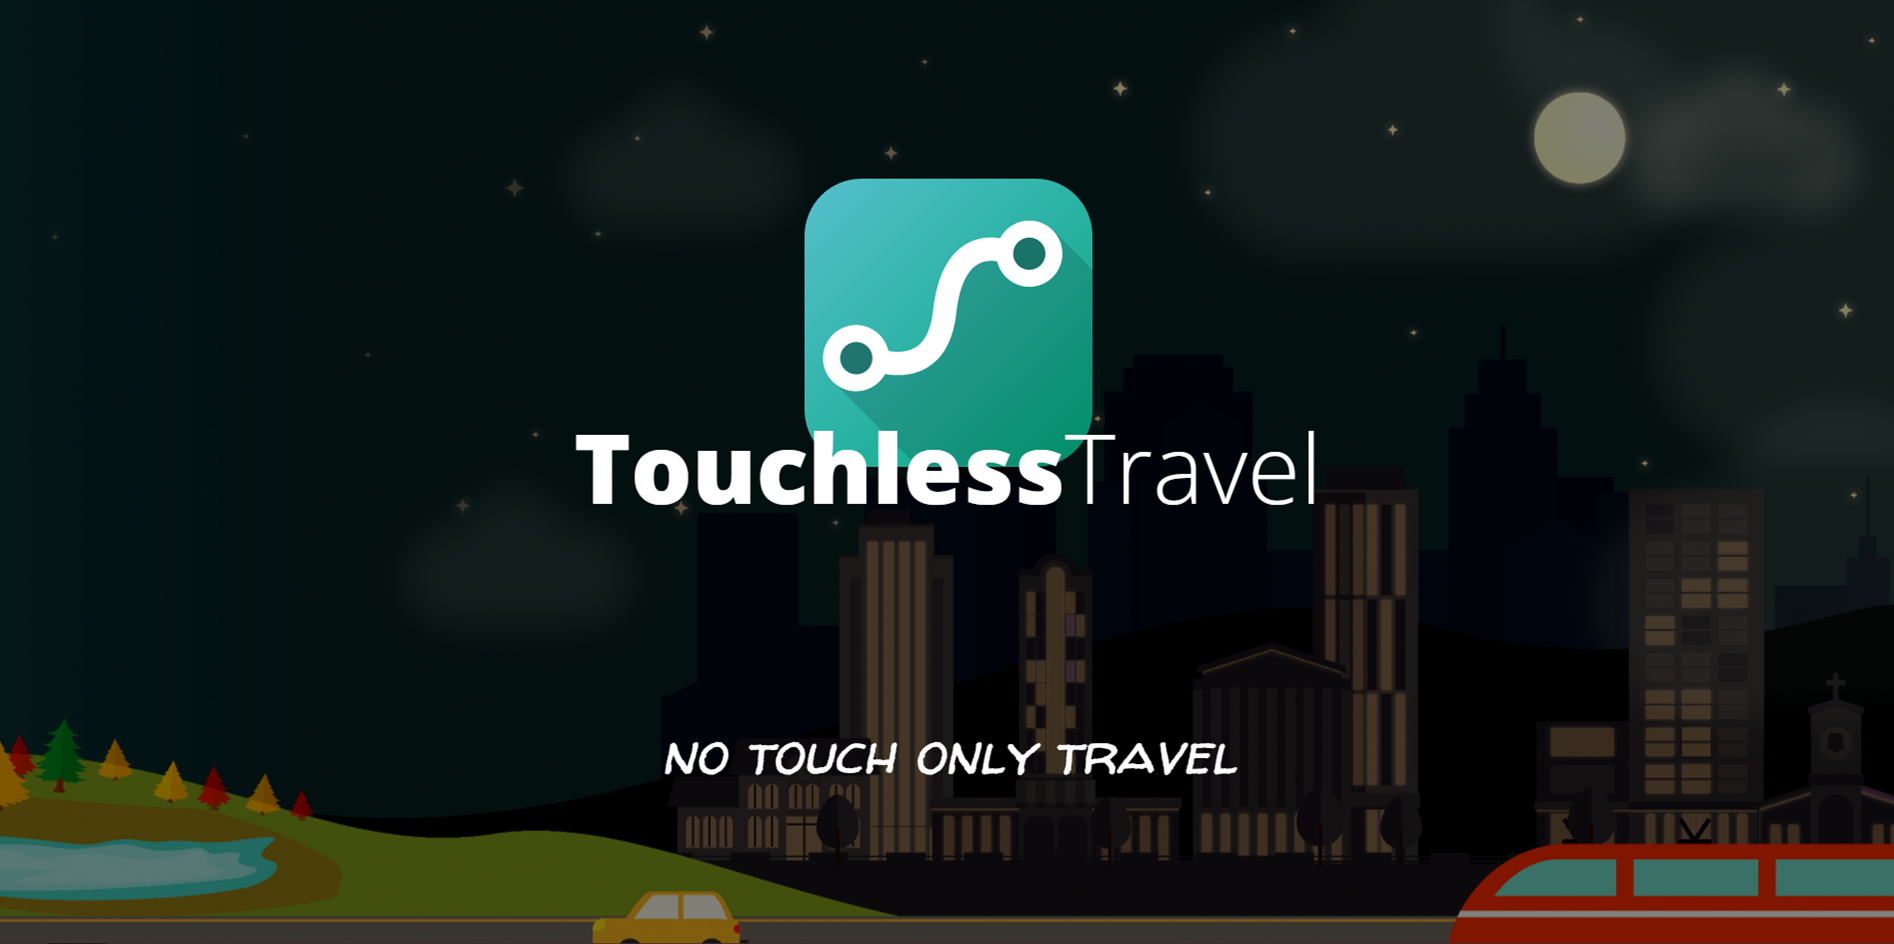 1touchless_travel